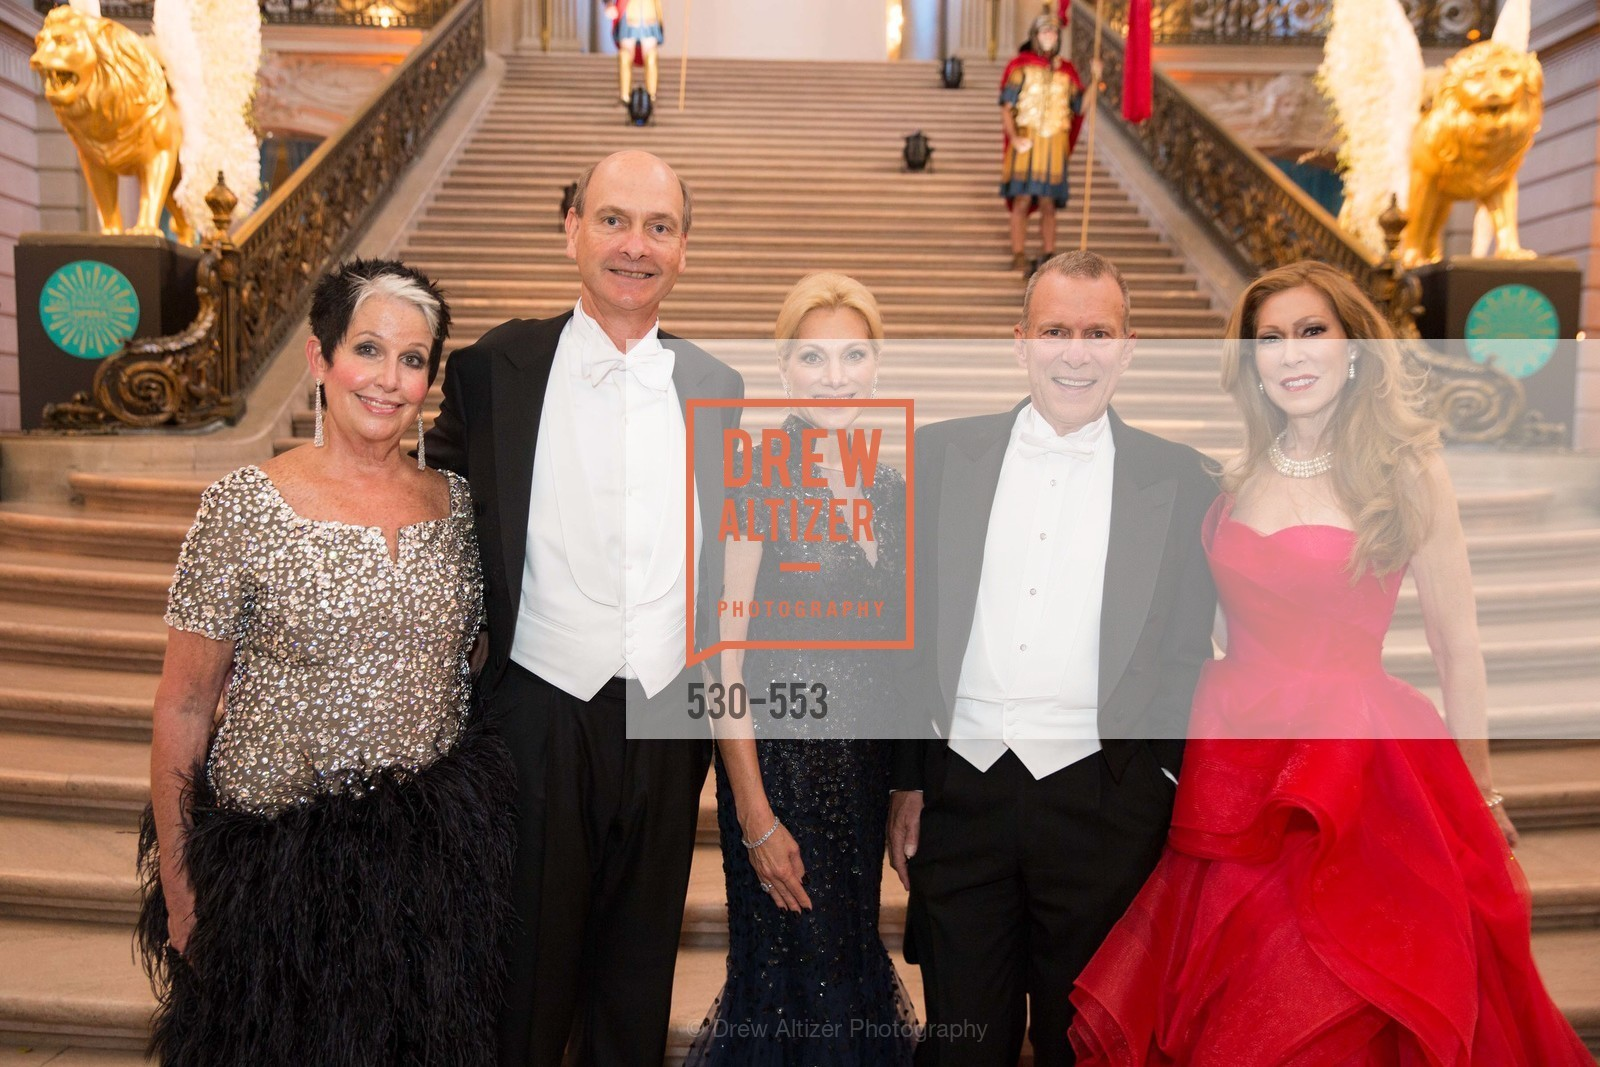 Karen Kubin, Keith Geeslin, Cynthia Schreuder, David Gockley, Teresa Medearis, SAN FRANCISCO OPERA'S 92nd Opera Ball 2014: PASSIONE, Opera House, September 5th, 2014,Drew Altizer, Drew Altizer Photography, full-service agency, private events, San Francisco photographer, photographer california